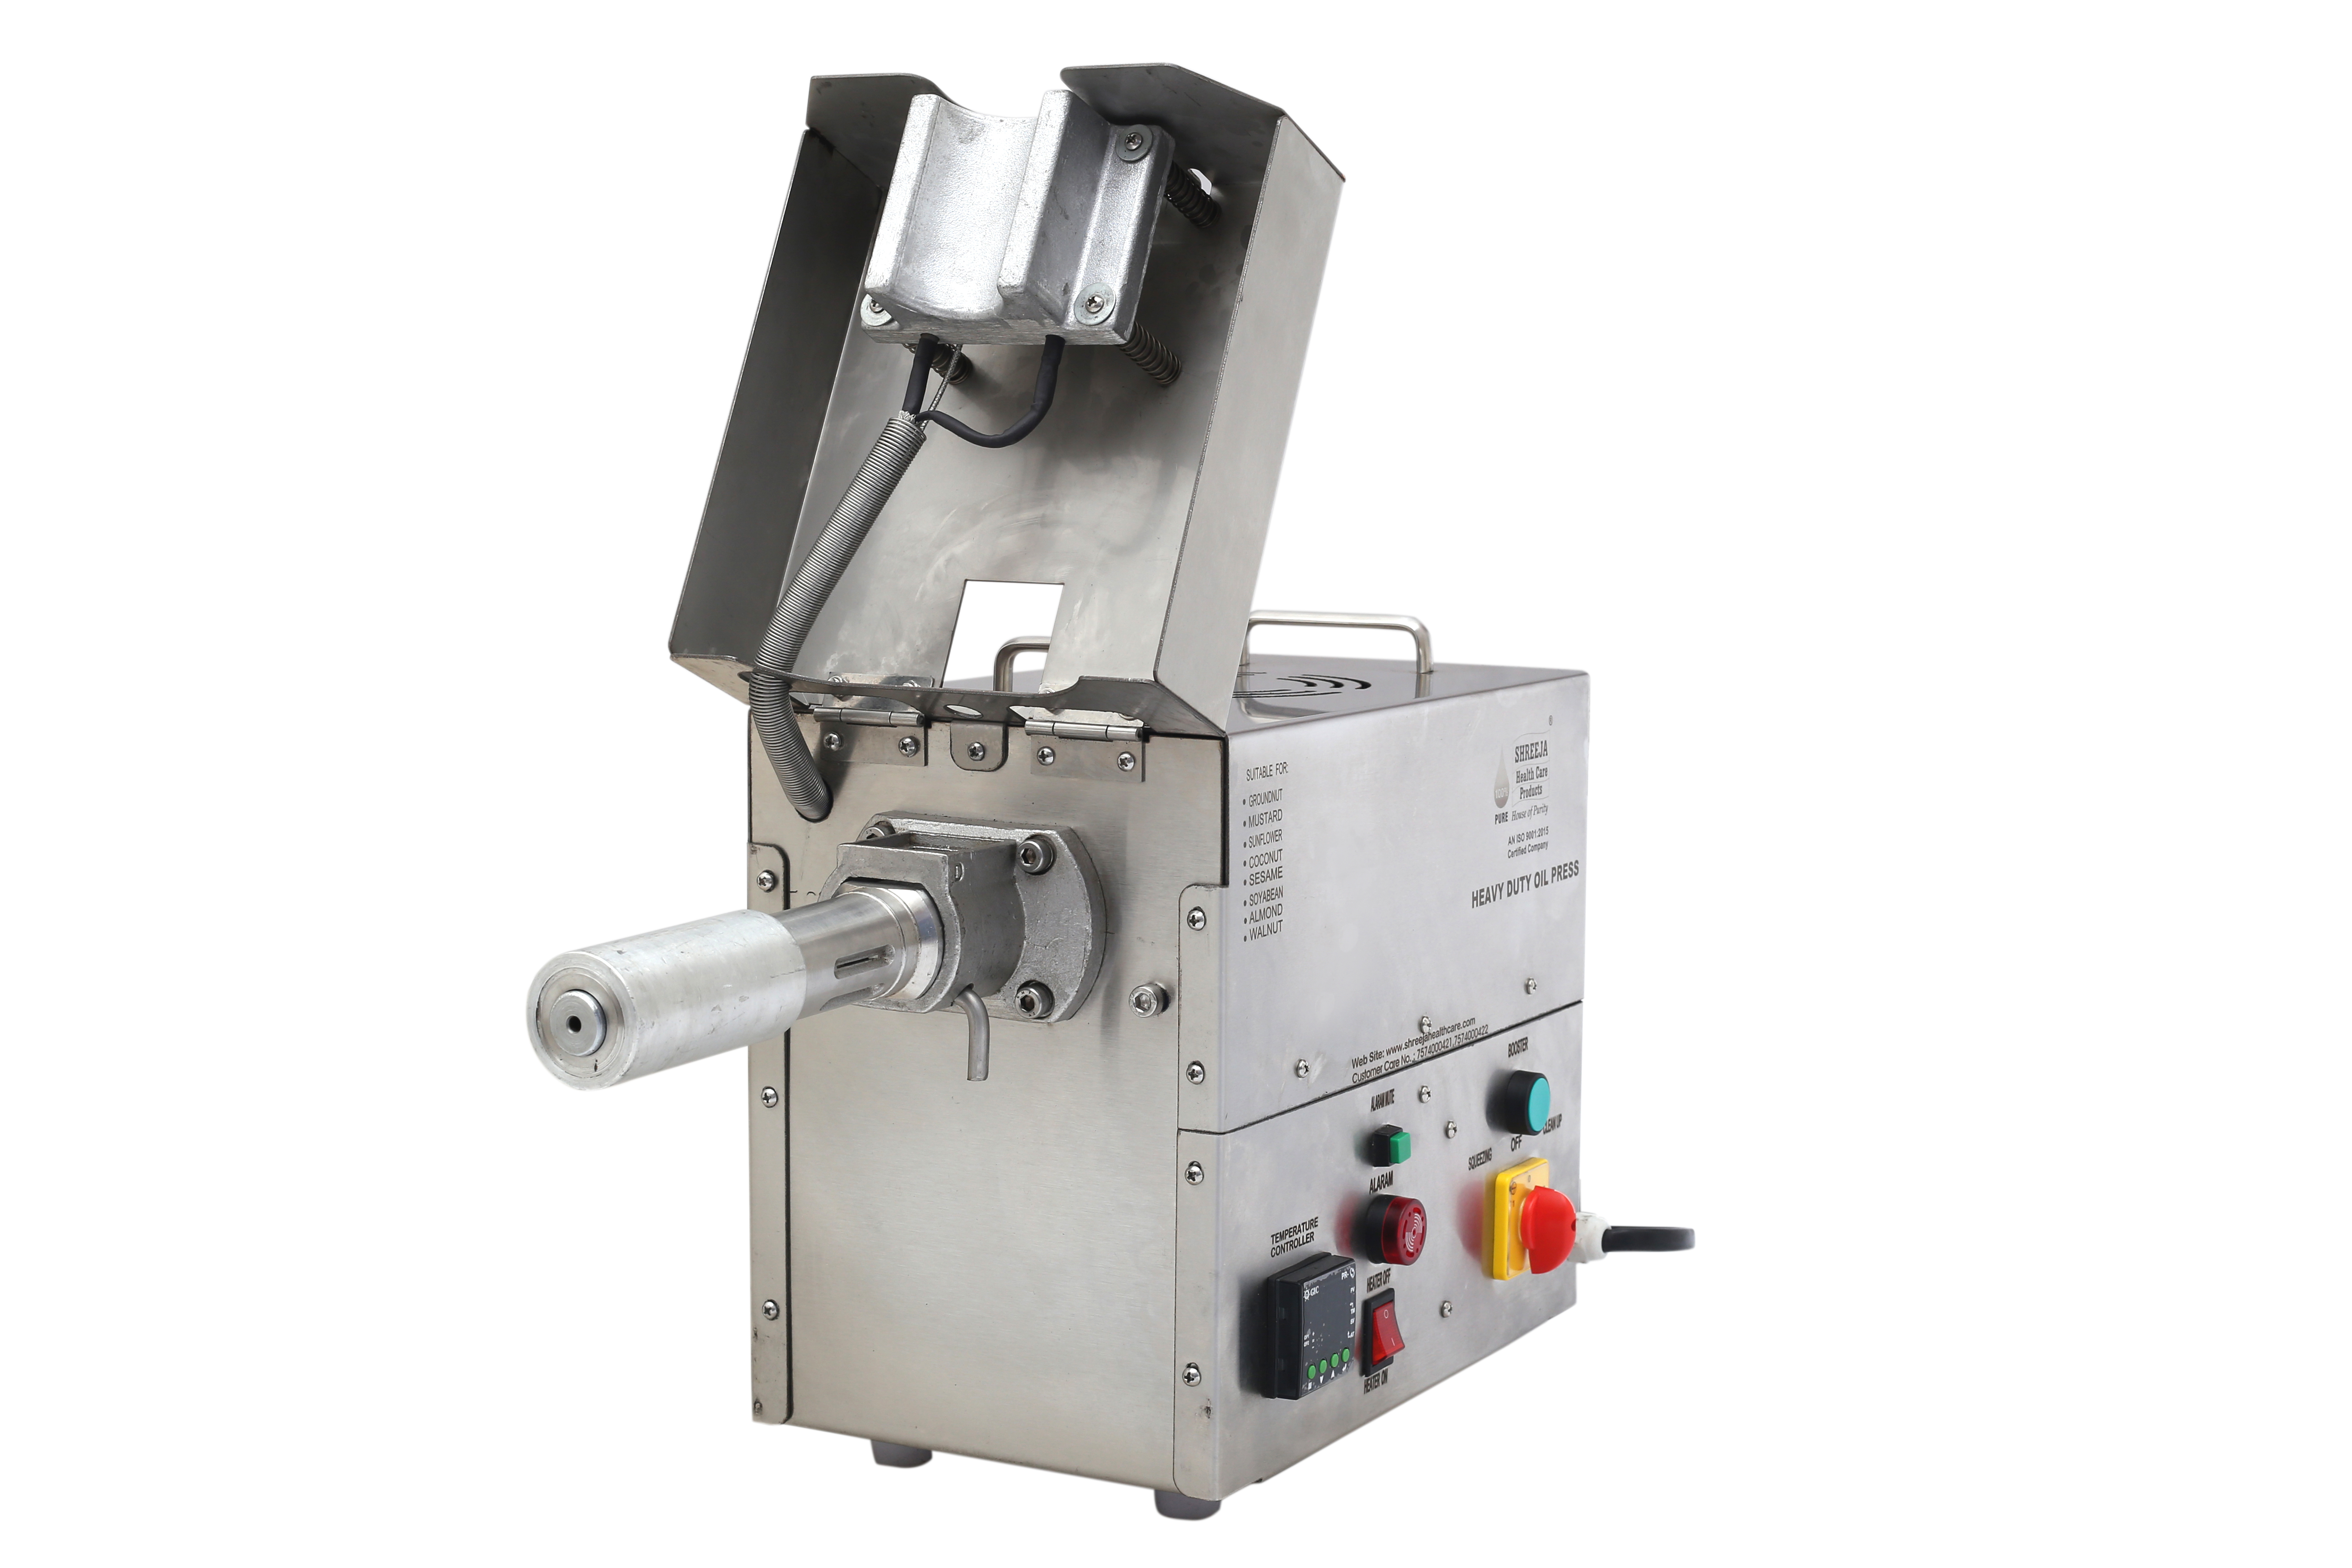 Ayurvedic Seeds Mini Commercial Oil Seed Extraction Machine